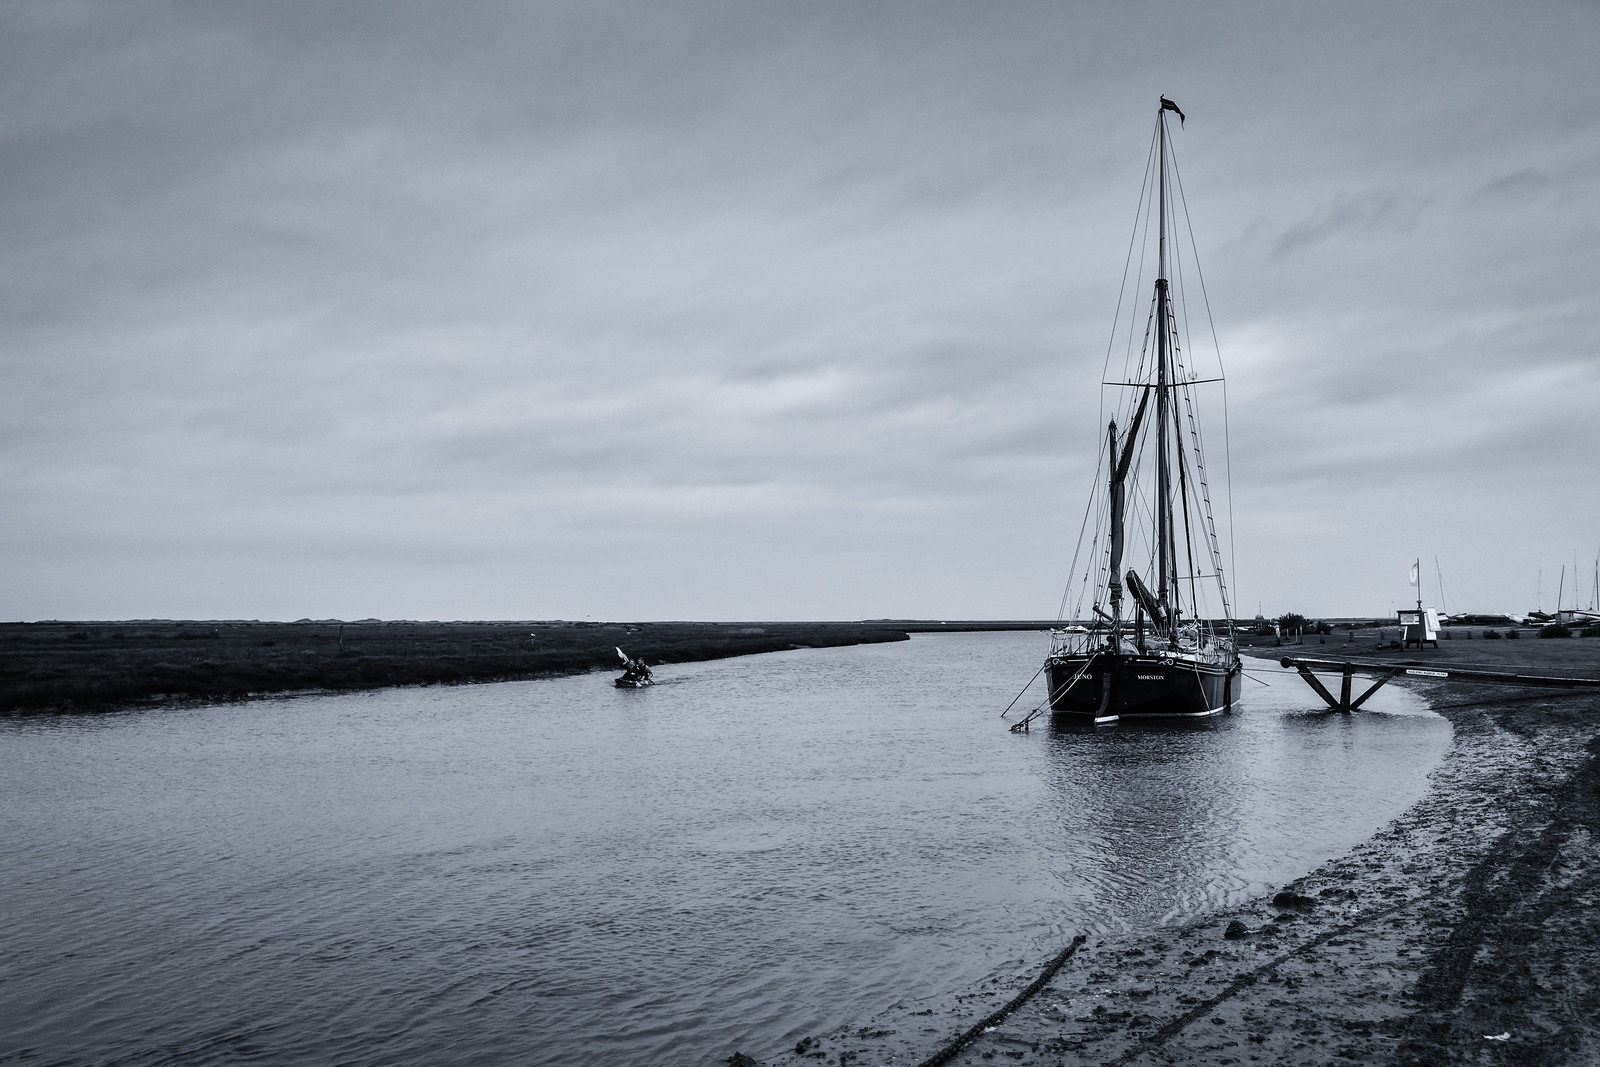 The Juno at Blakeney